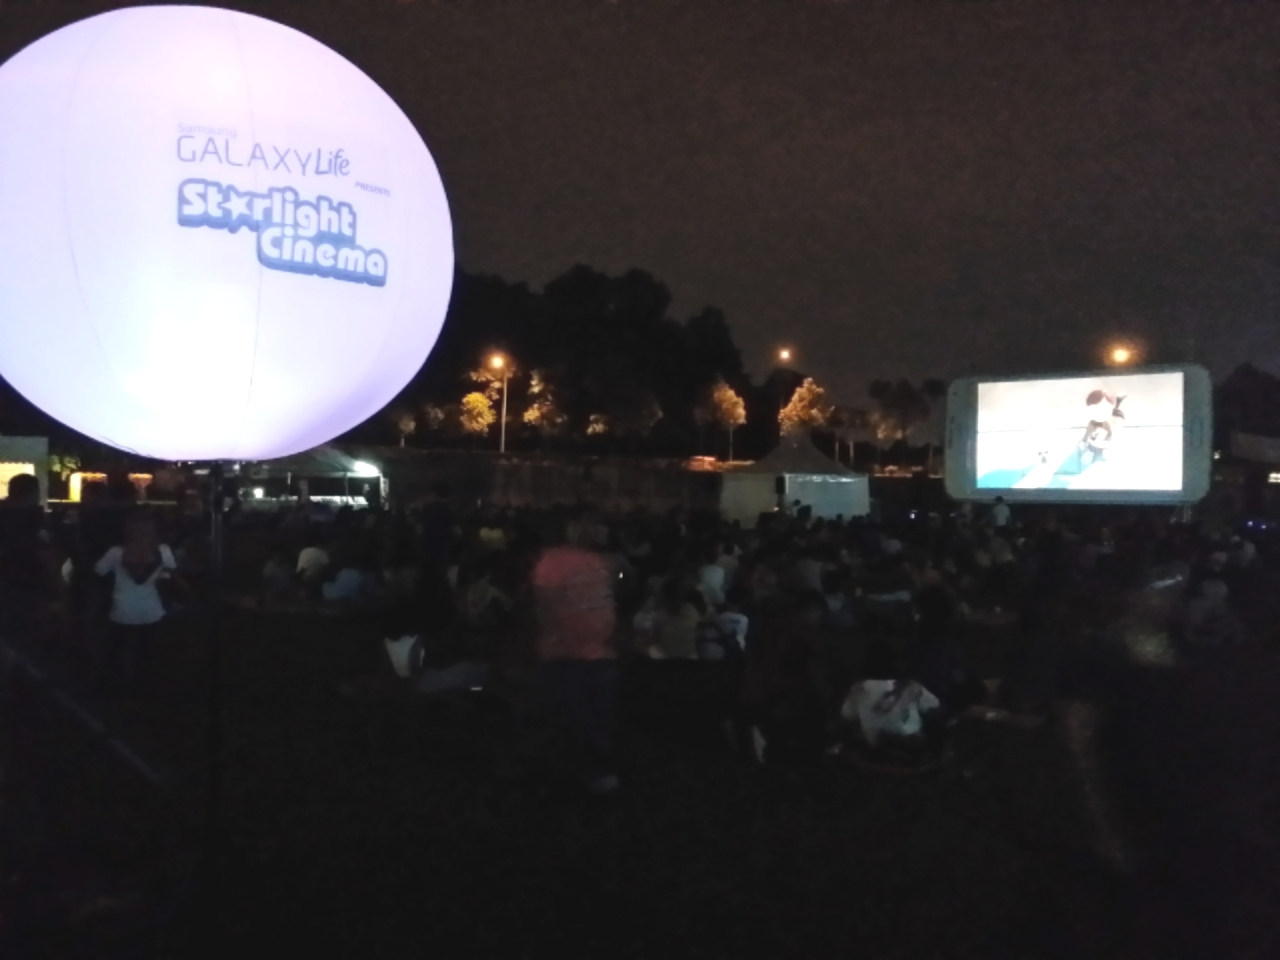 Starlight Cinema 2014